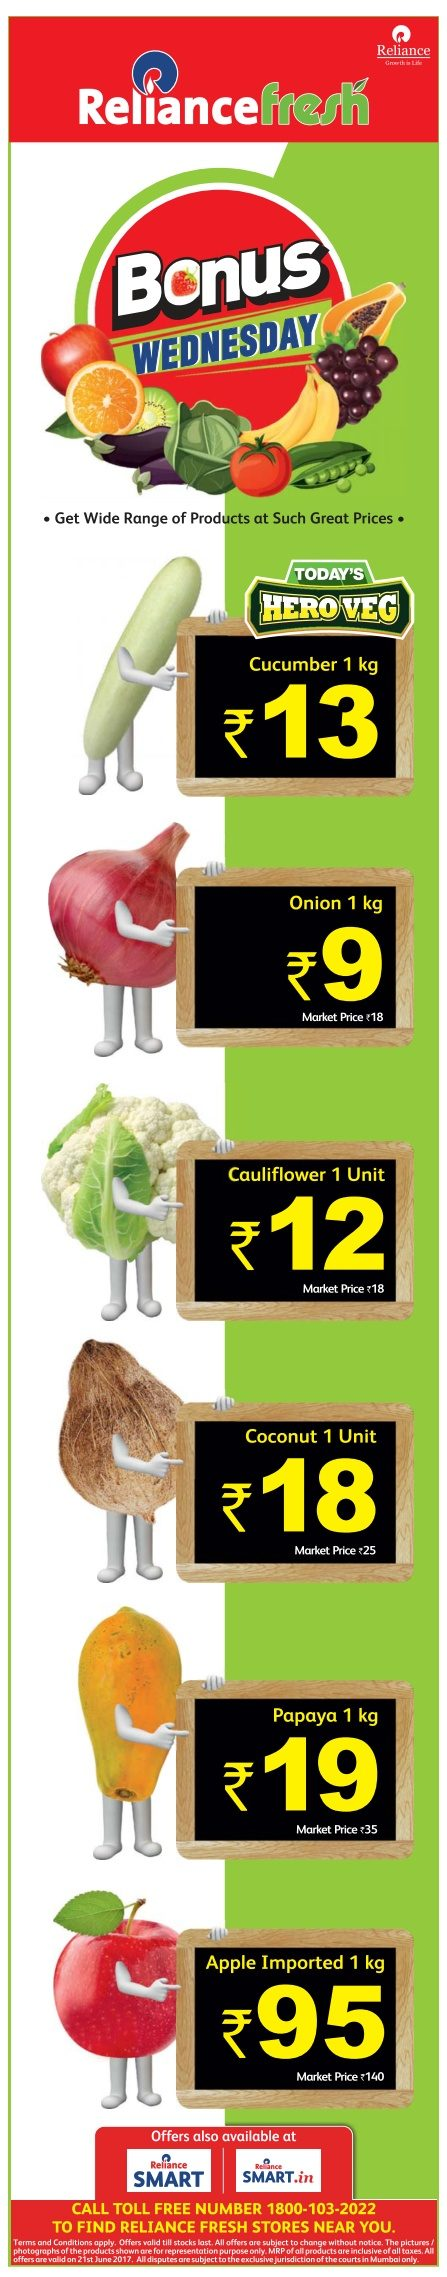 Reliance Fresh Bonus Wednesday Ad